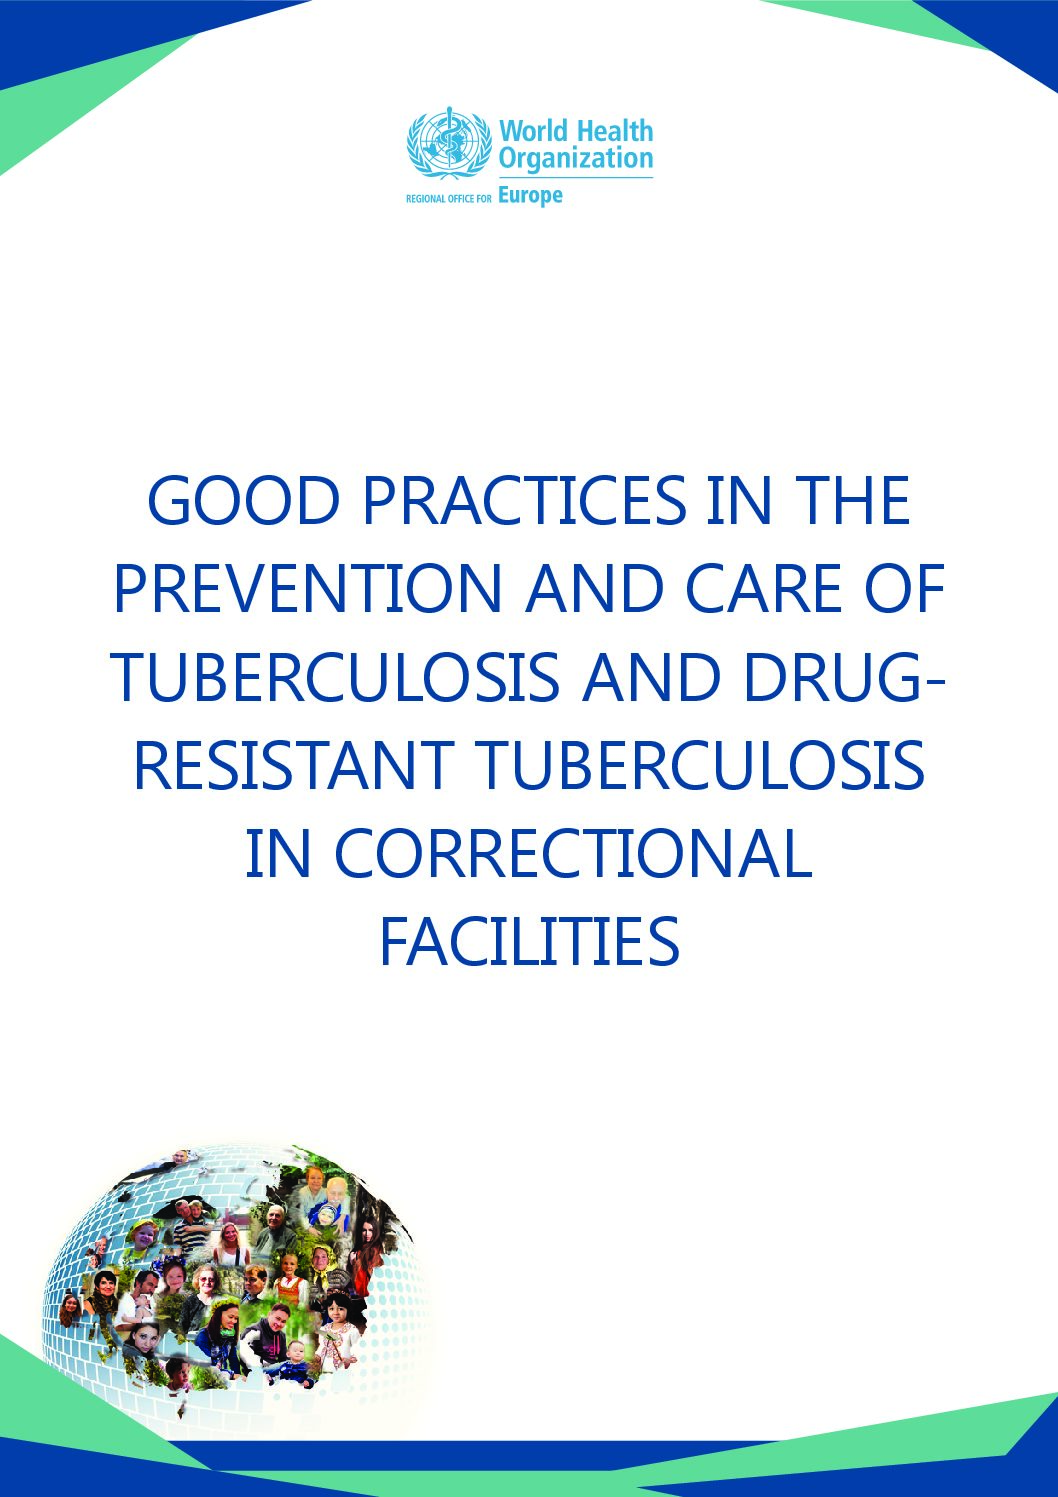 Good practices in the prevention and care of tuberculosis and drug-resistant tuberculosis in correctional facilities